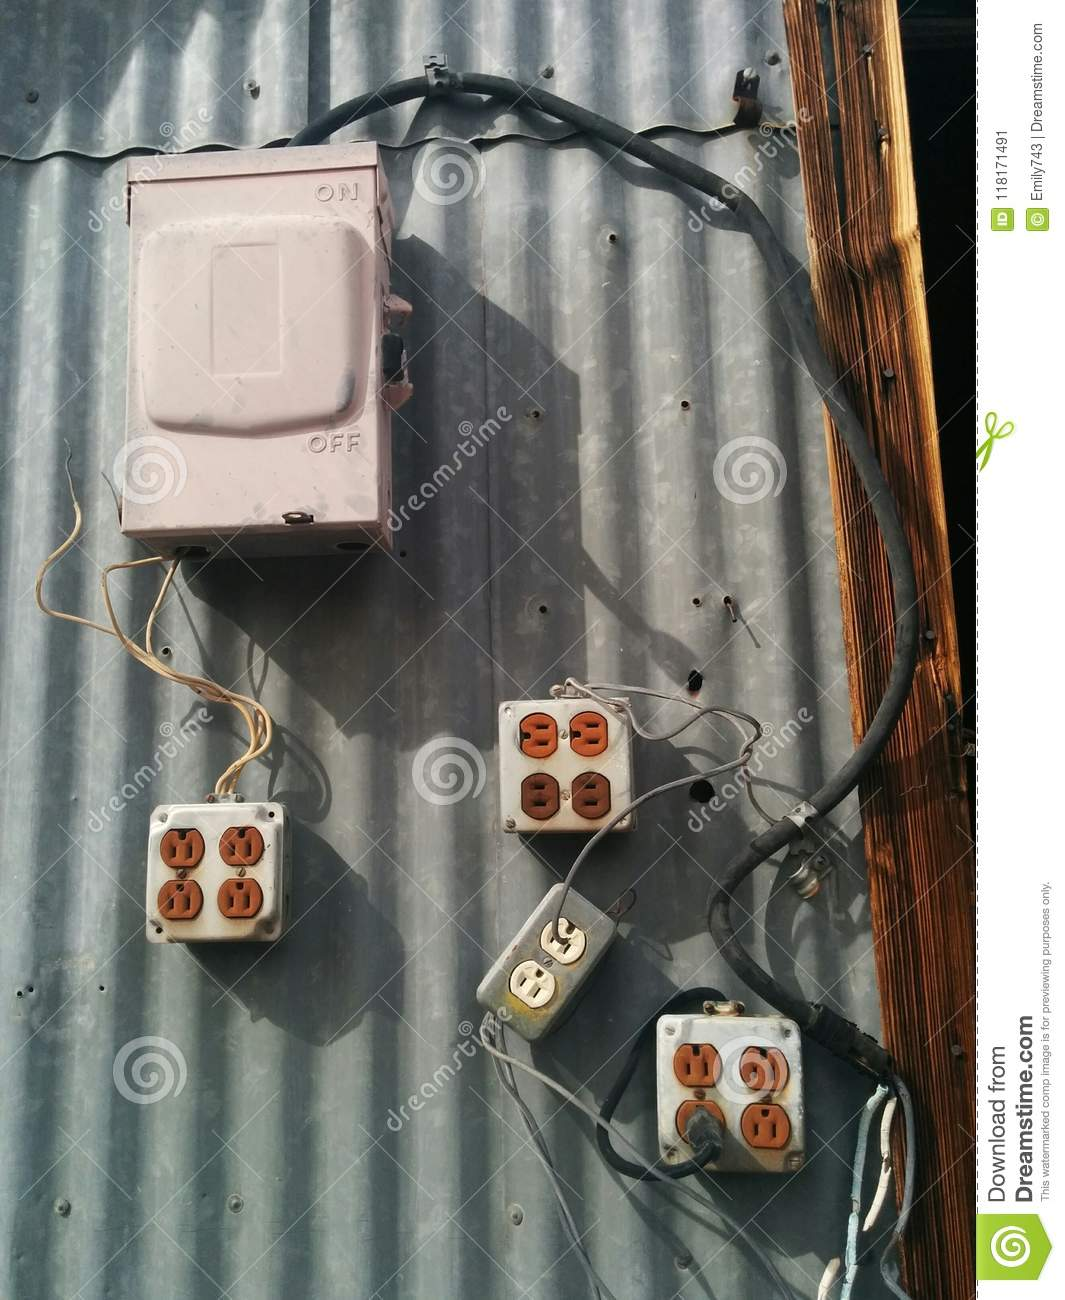 Electrical Box And Many Outlets In Unsafe Configuration Stock Image Wiring